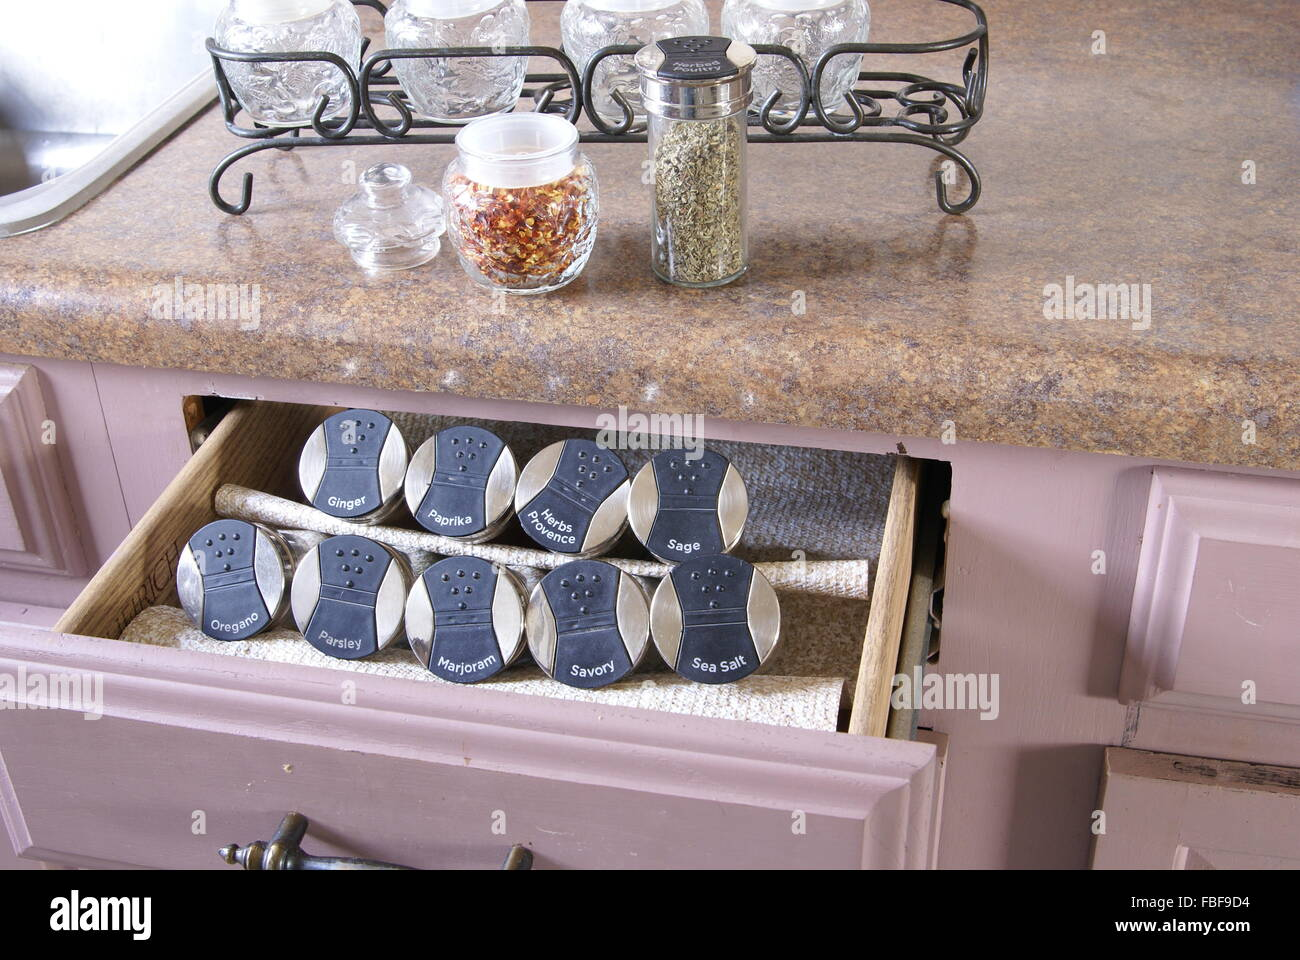 Labeled spice jars organized in a drawer - Stock Image